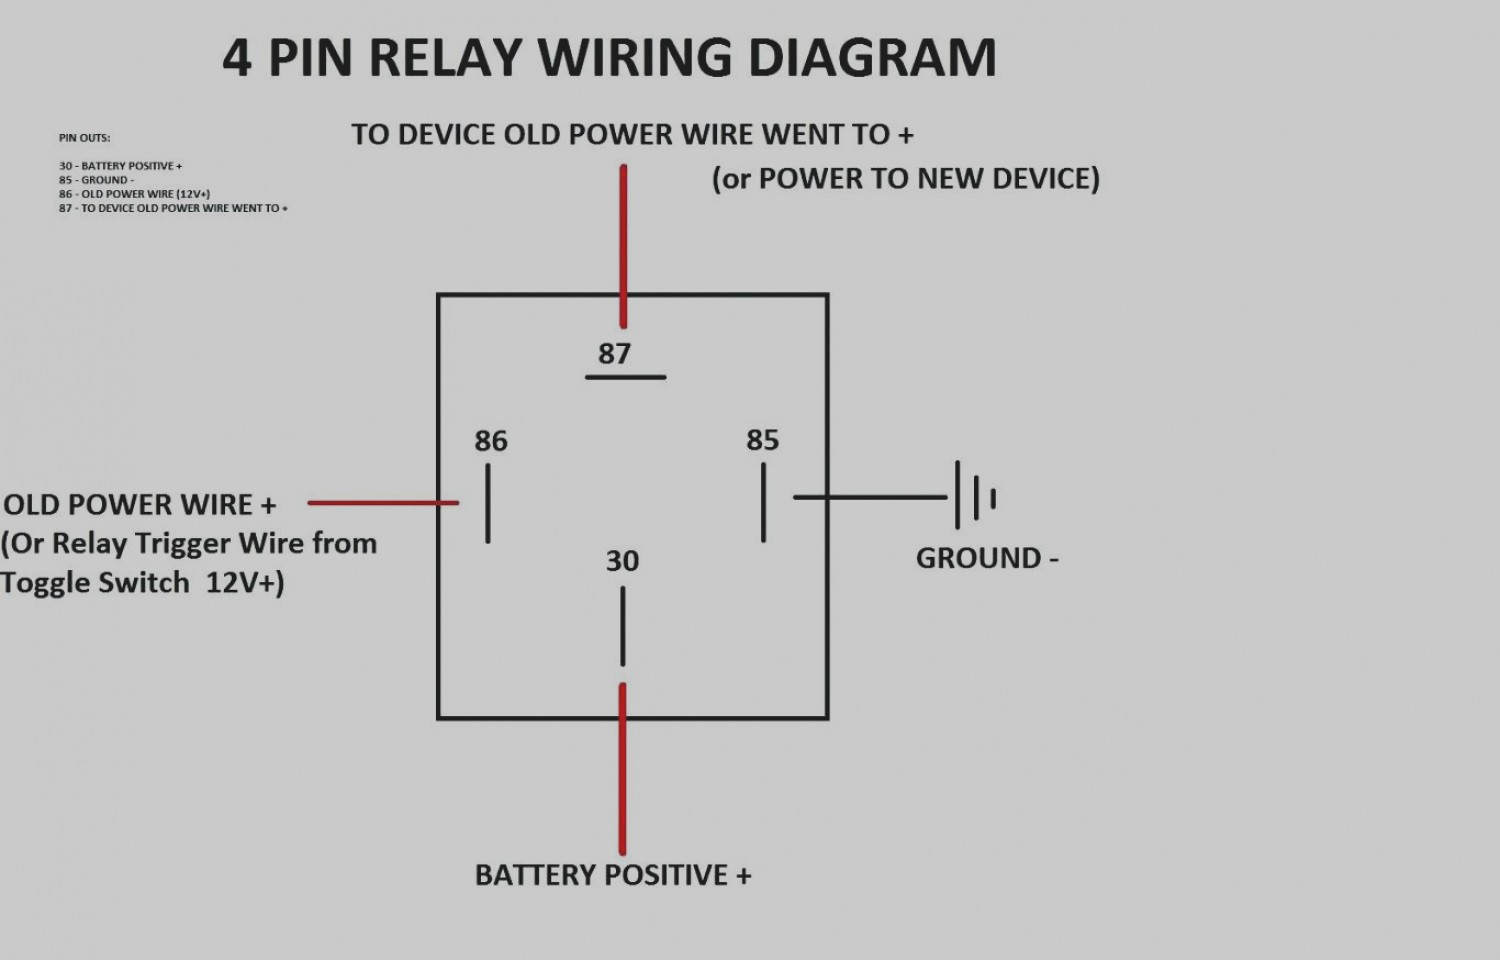 4 pole relay wiring diagram nk 4849  pin relay wiring diagram pictures wire diagram 4 pin  pin relay wiring diagram pictures wire